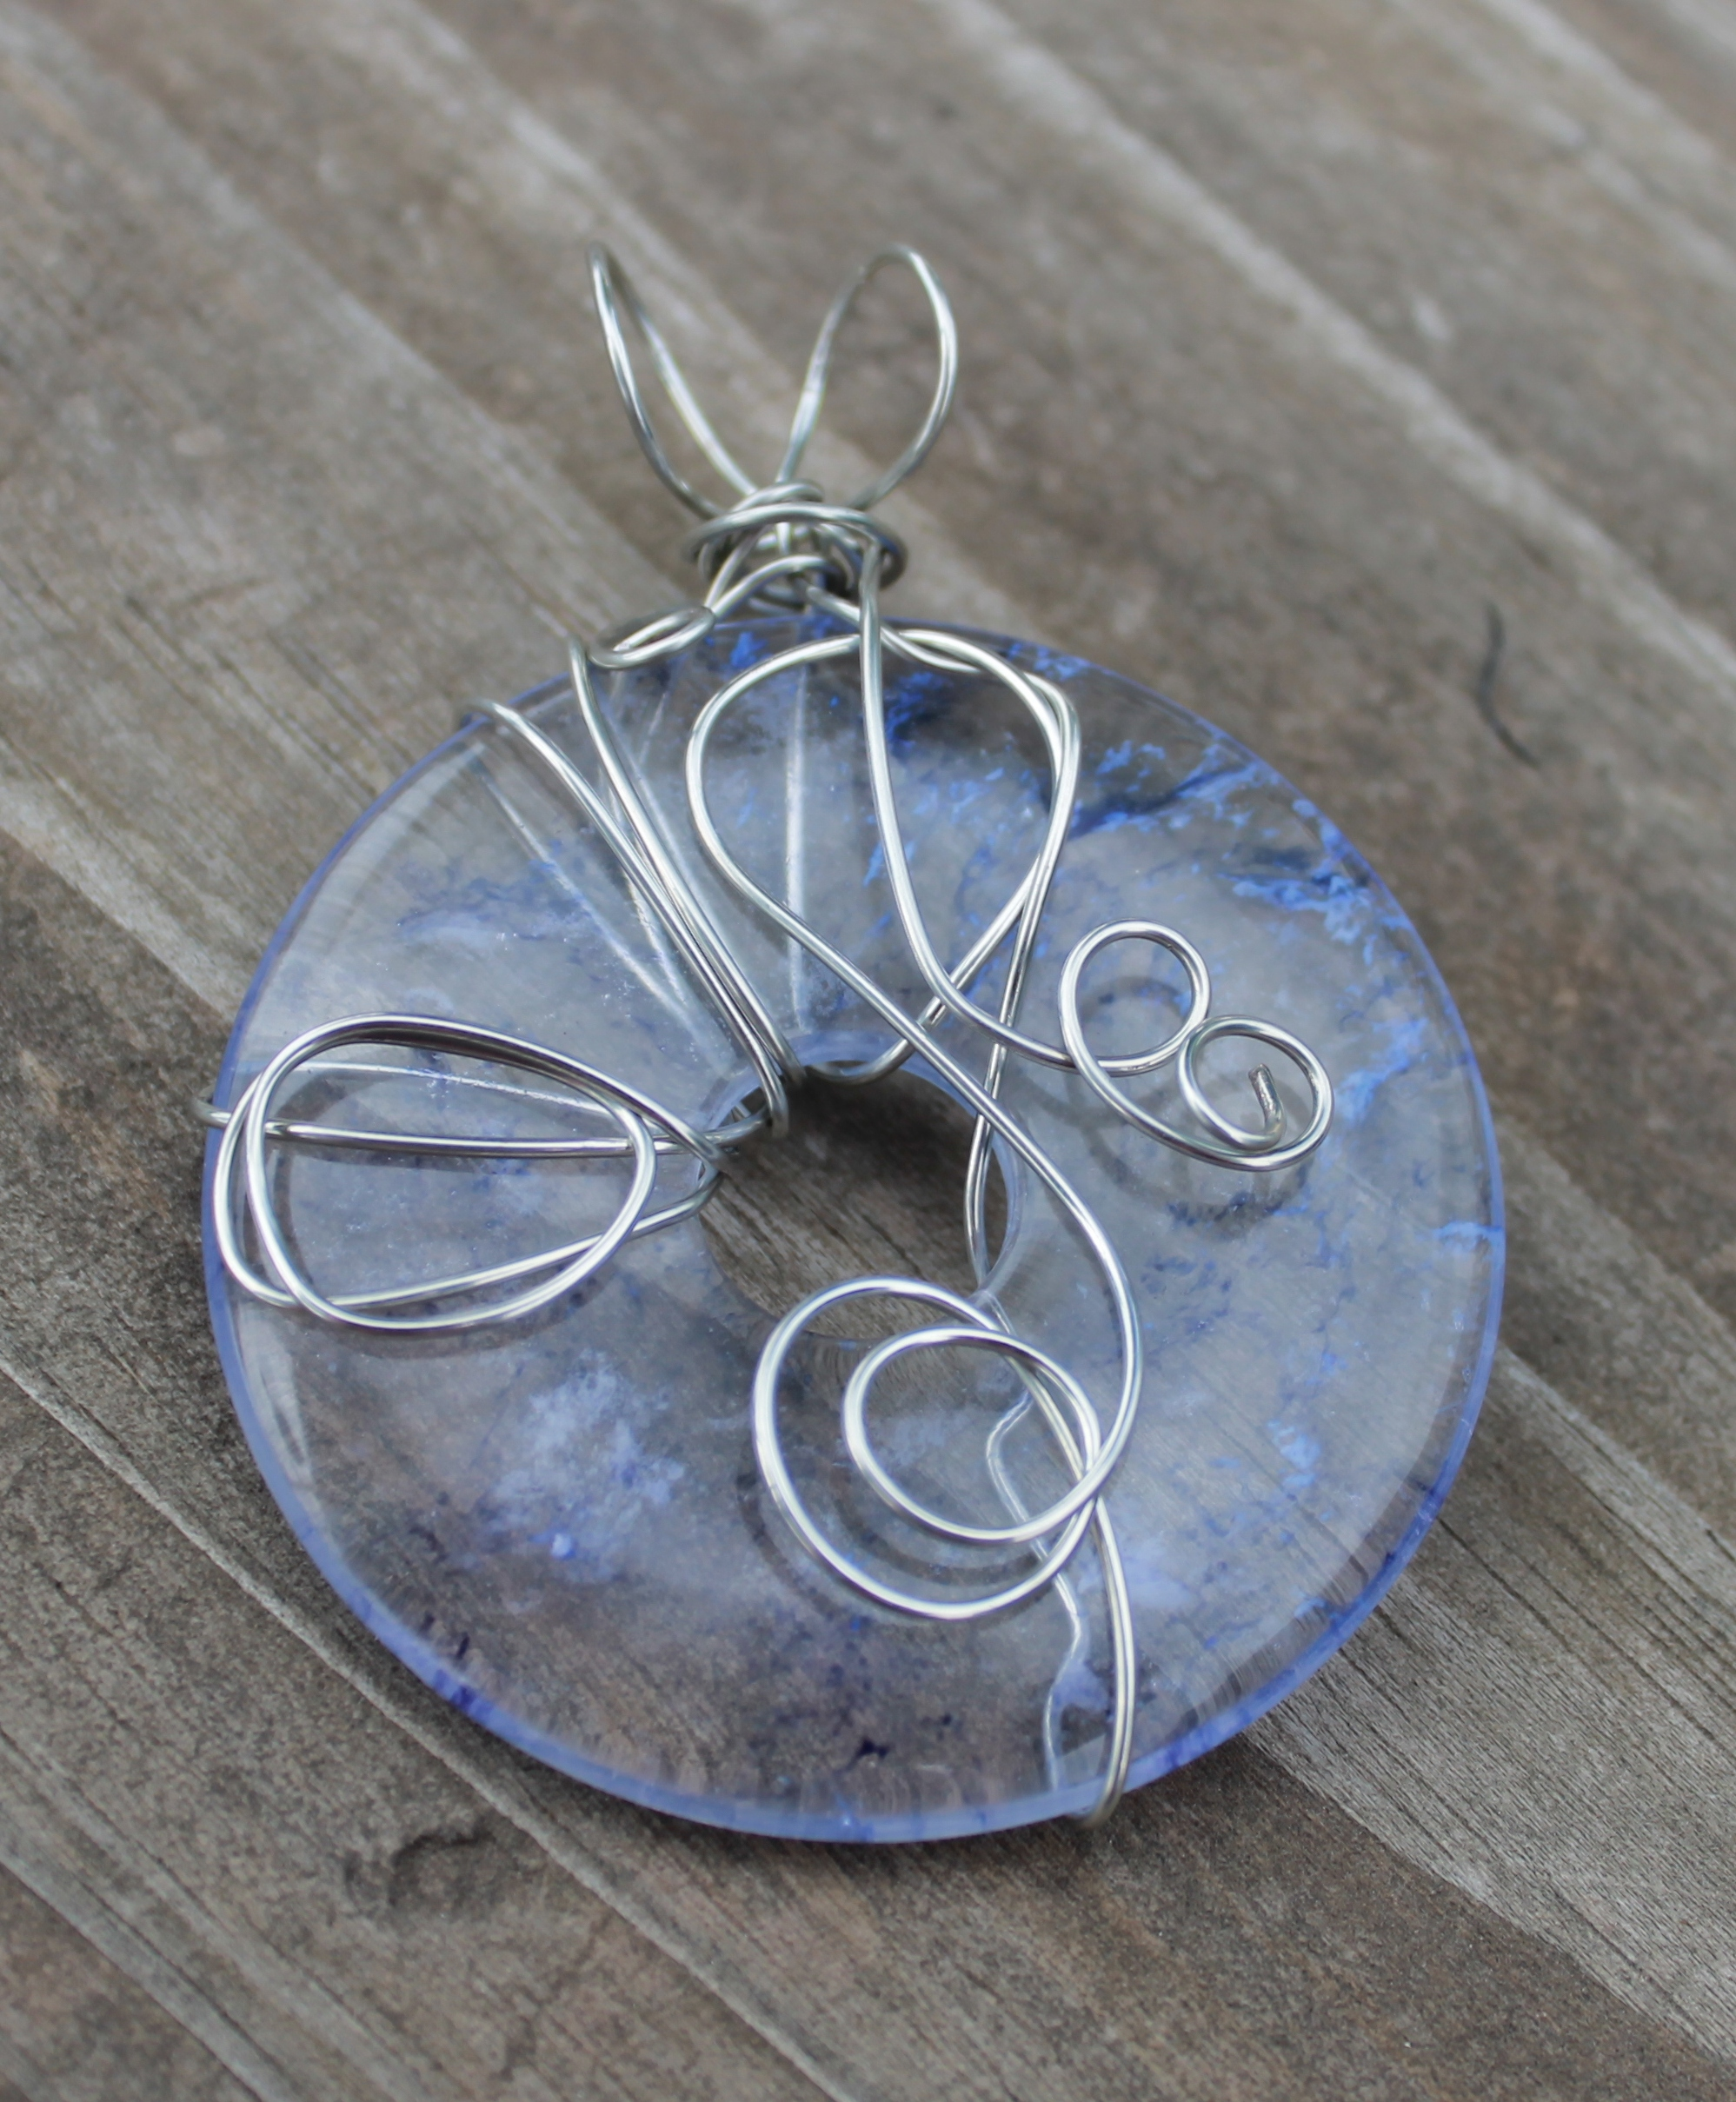 wire wrapped pendant donuts - photo #27